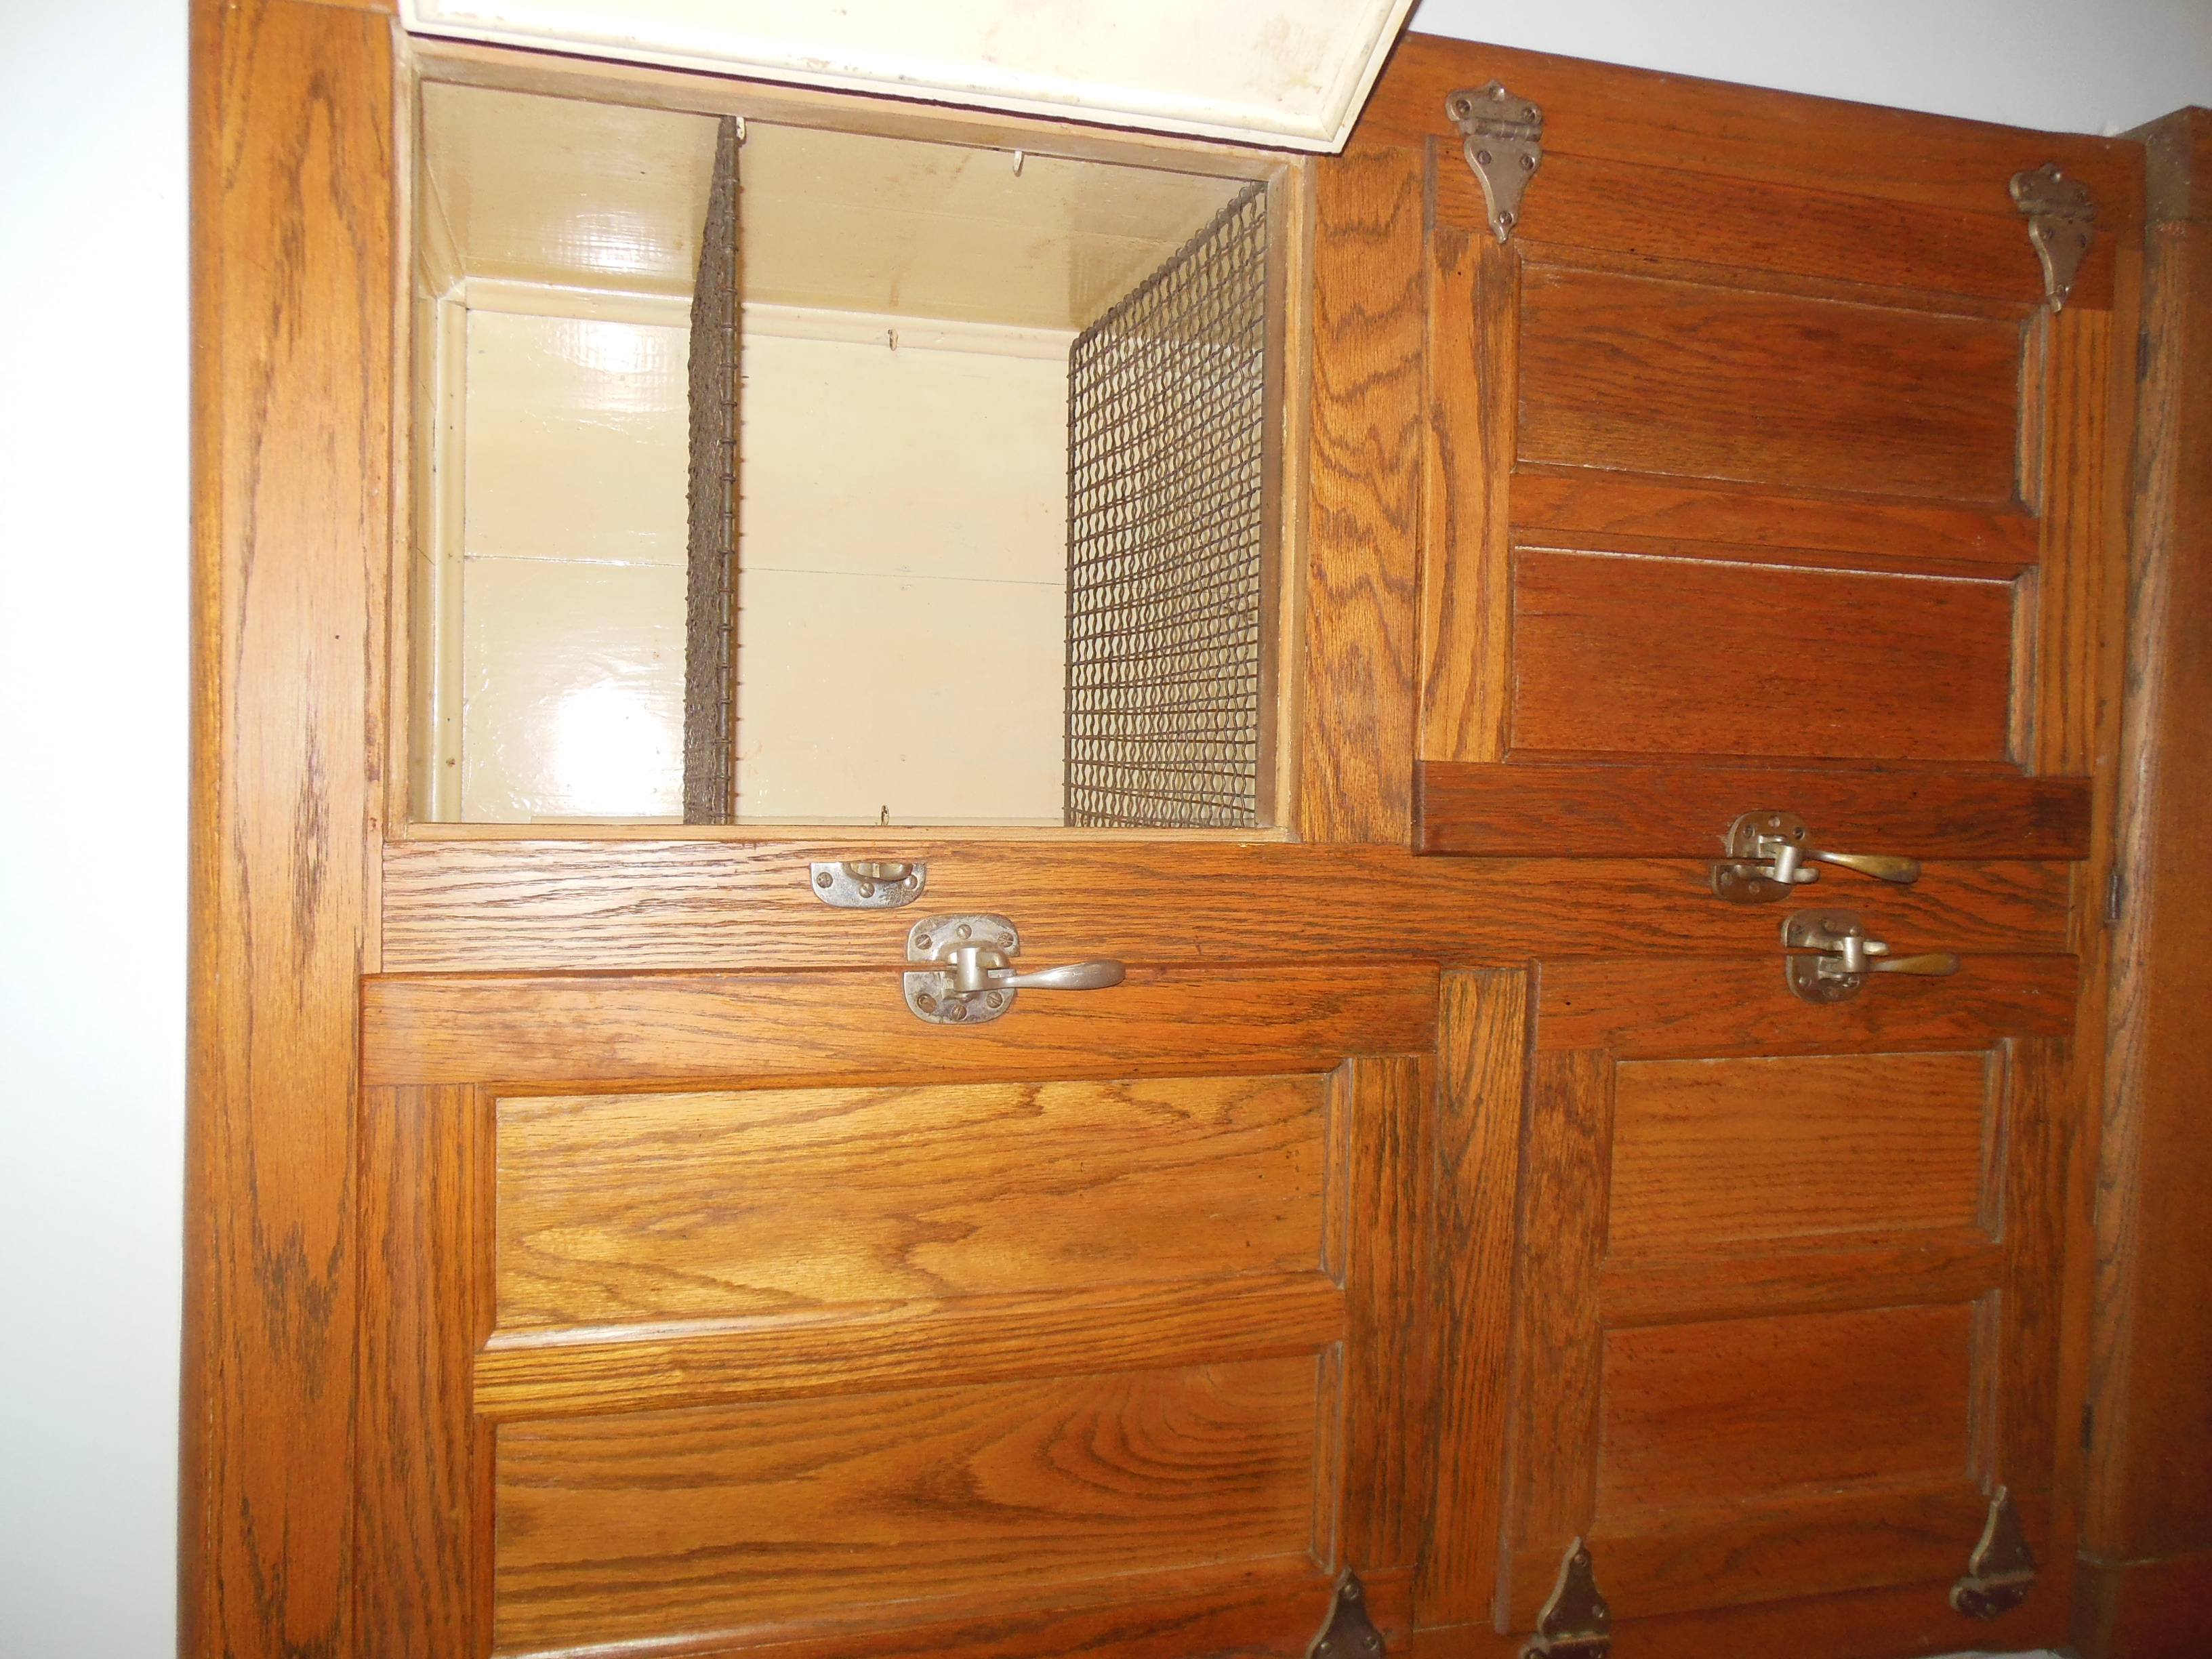 509 Normal St cabinets